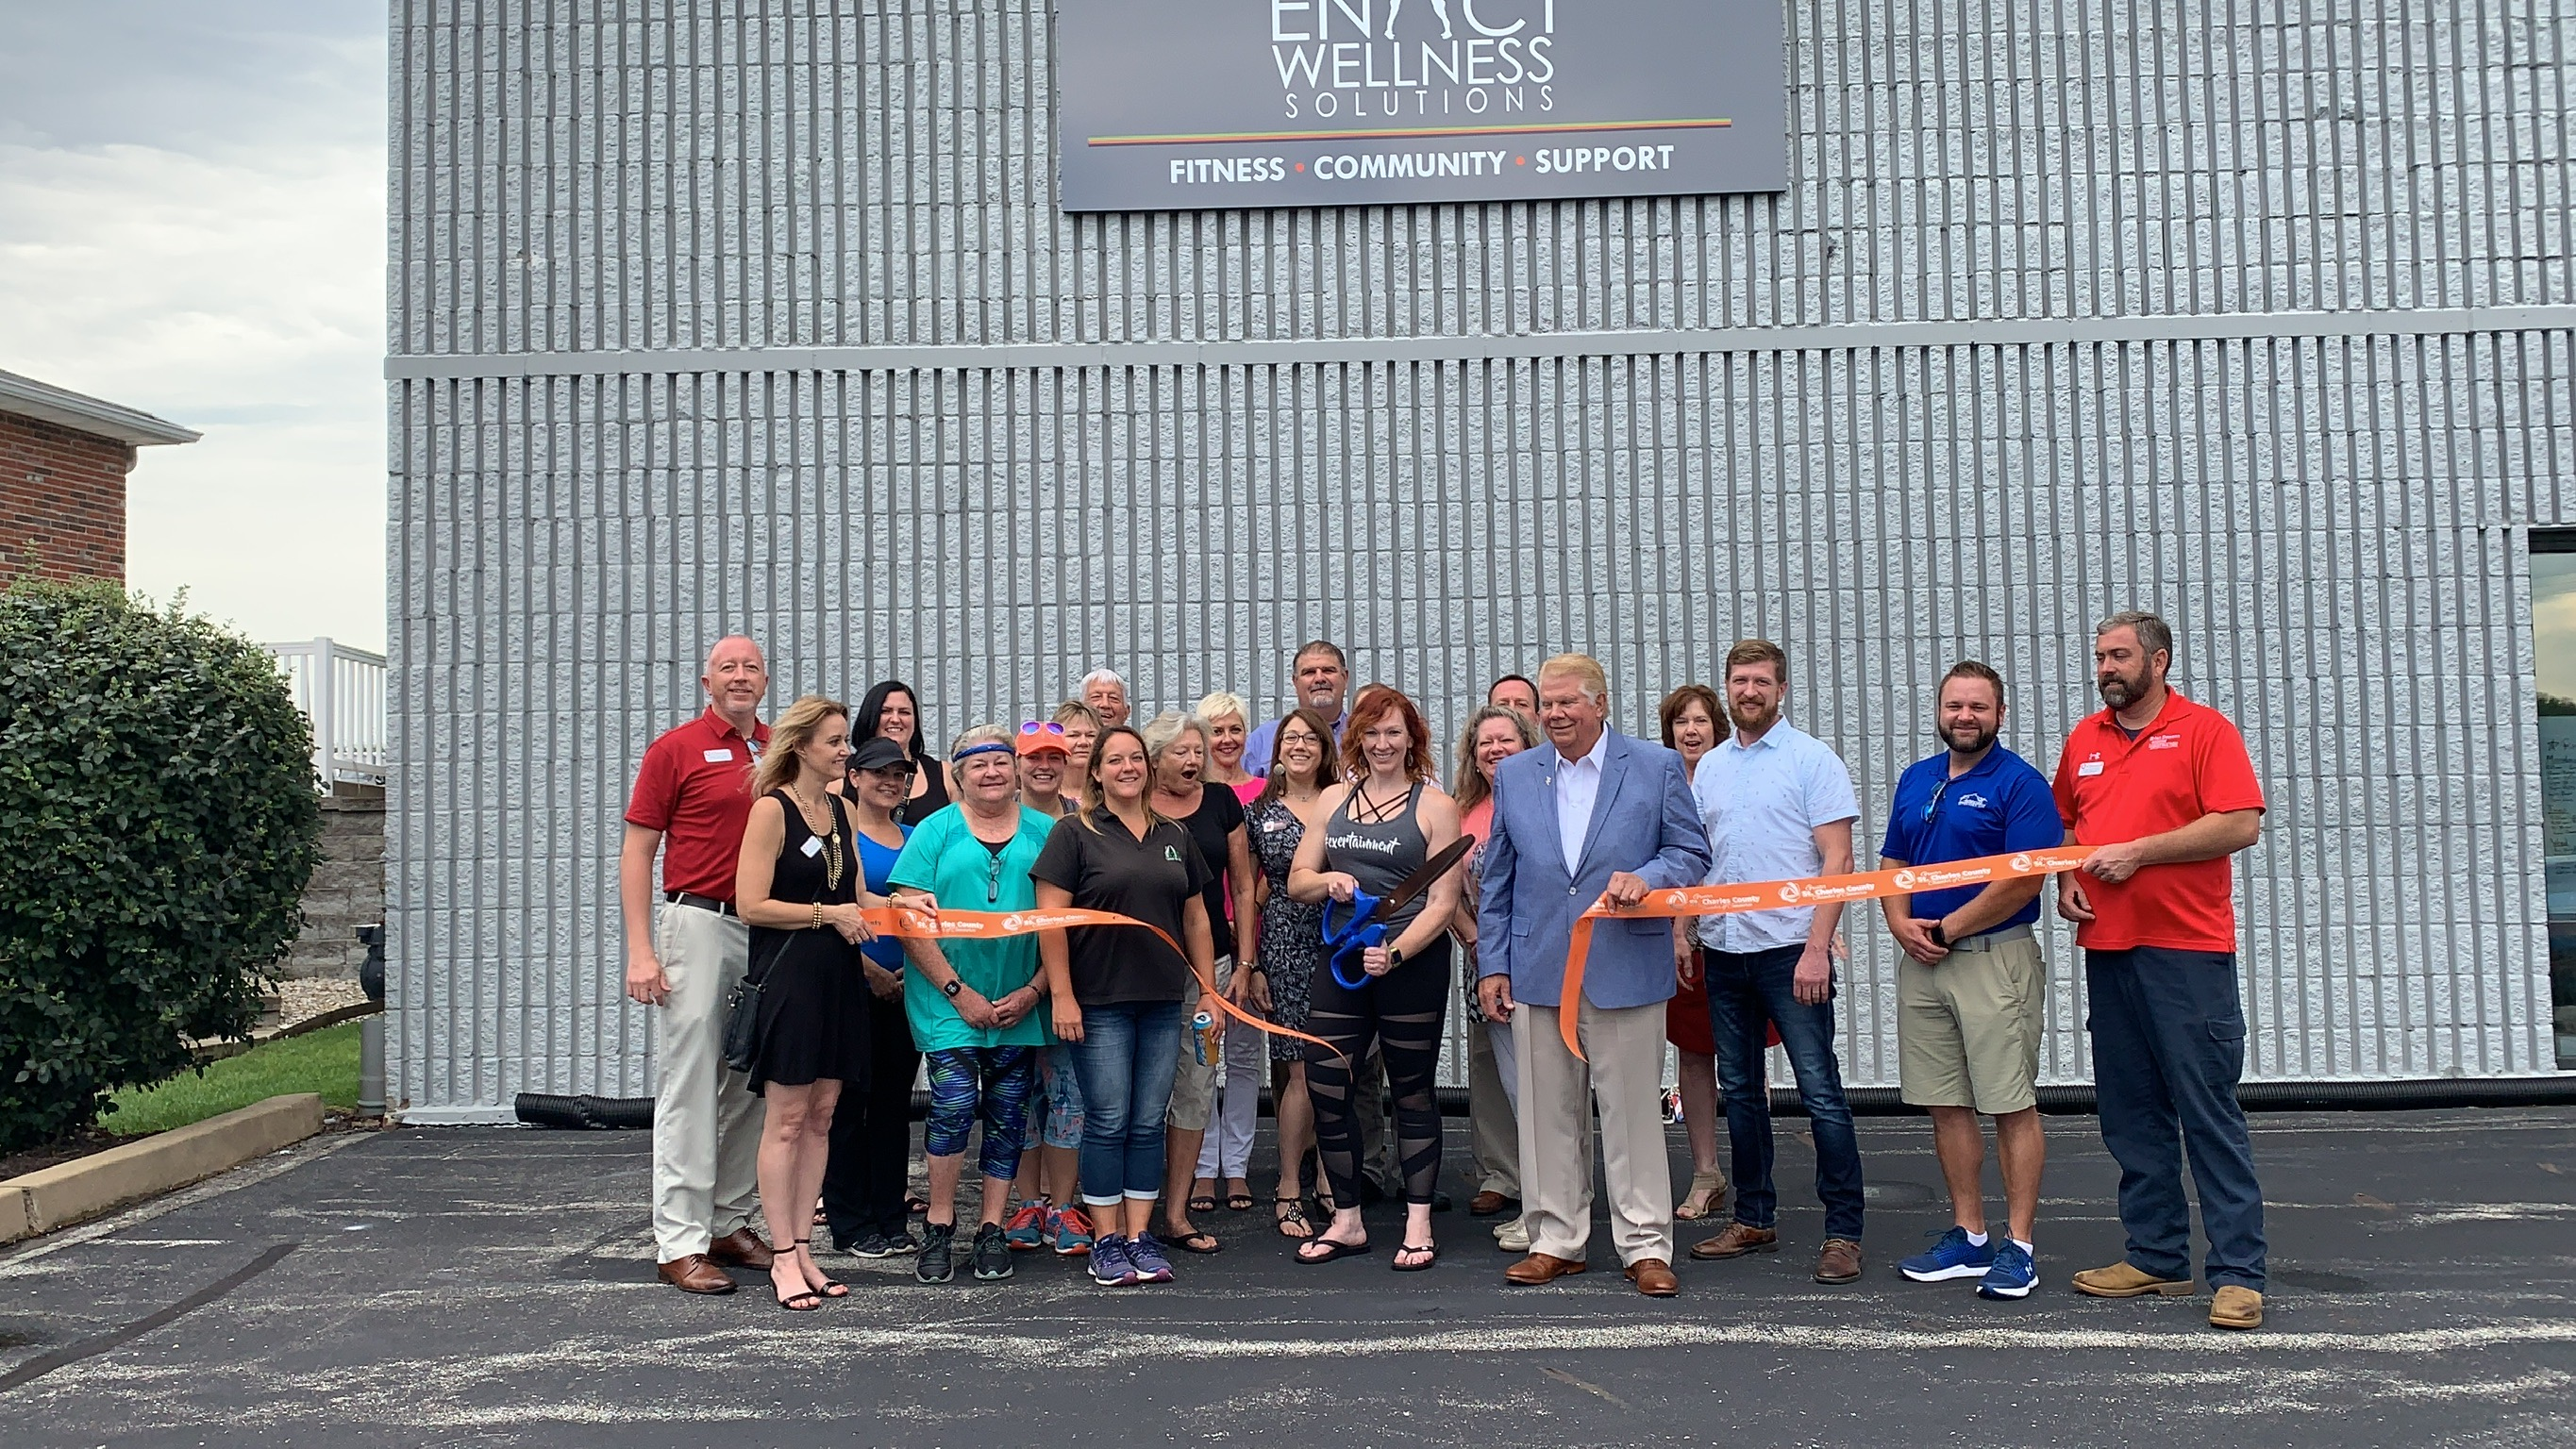 Enact Wellness Solutions Celebrates Grand Opening with Ribbon Cutting Dedication